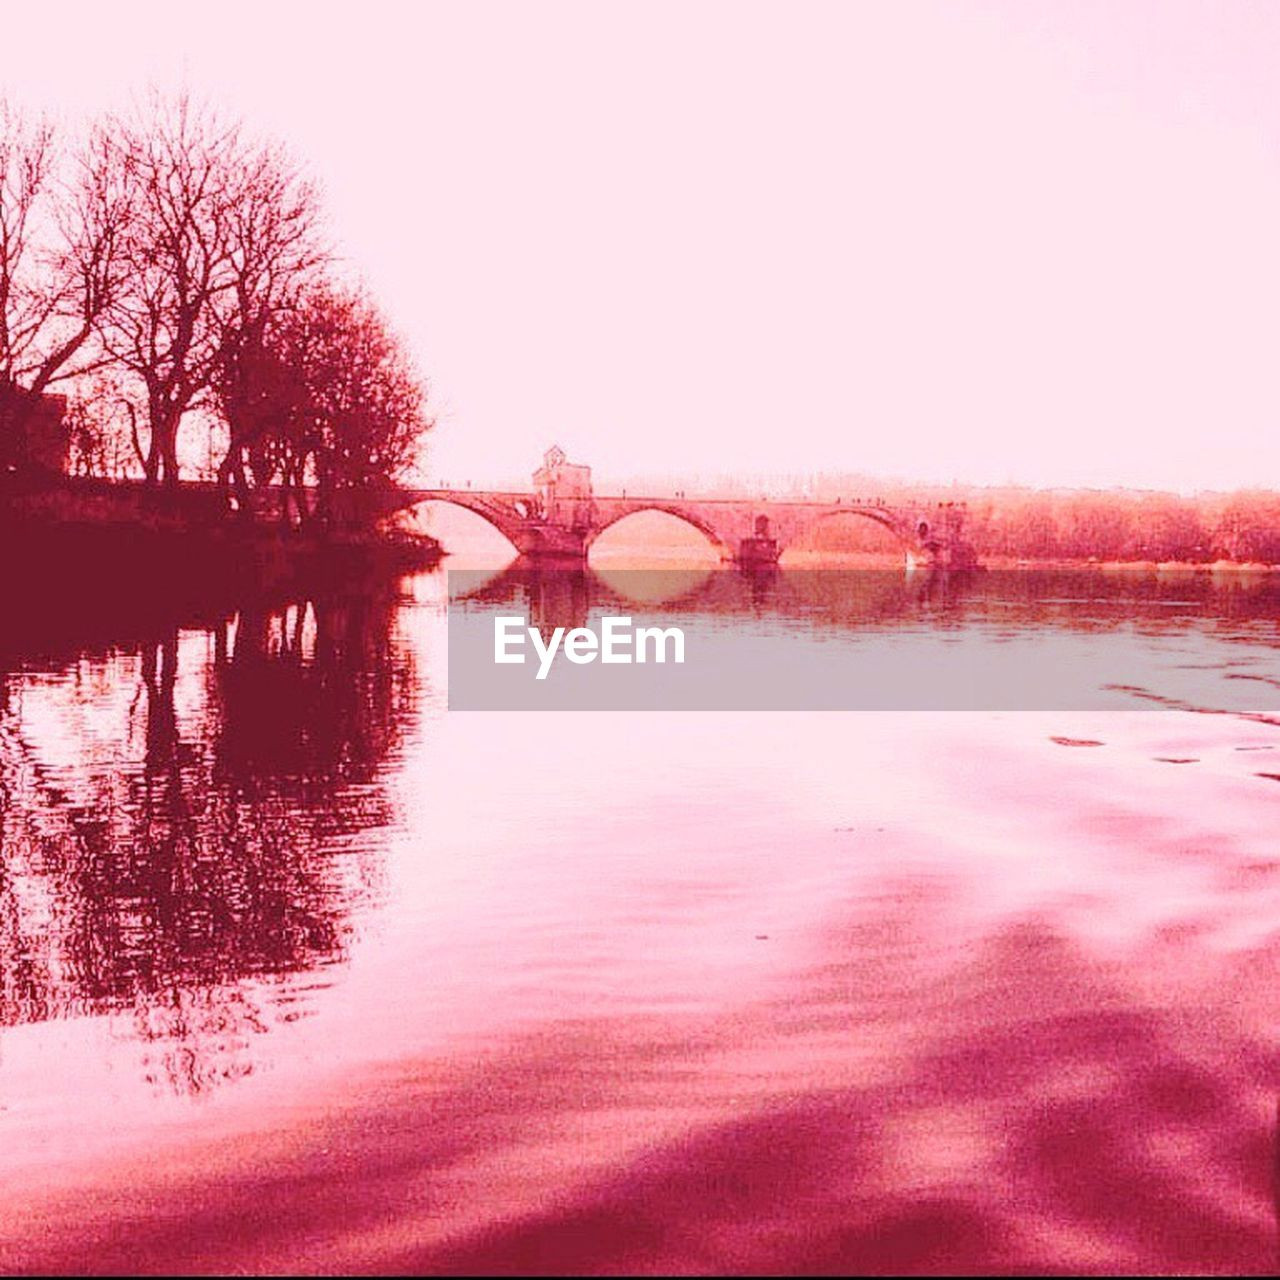 water, tree, reflection, nature, no people, outdoors, beauty in nature, river, pink color, tranquility, bridge - man made structure, scenics, sky, day, clear sky